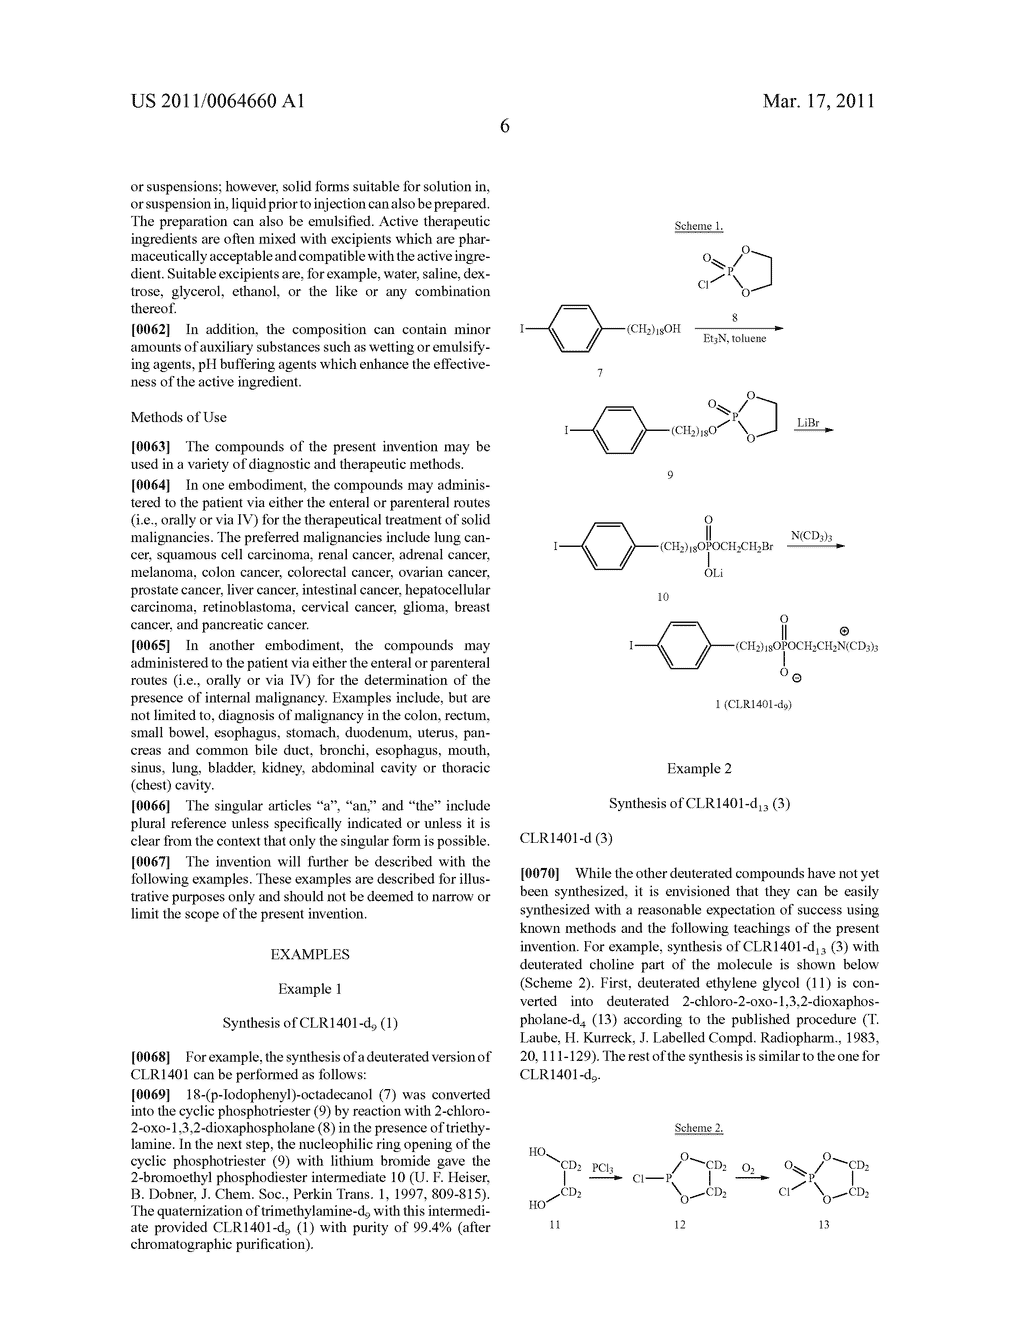 DEUTERATED ALKYL PHOSPHOLIPID COMPOUNDS, COMPOSITIONS, AND METHODS OF USE - diagram, schematic, and image 07